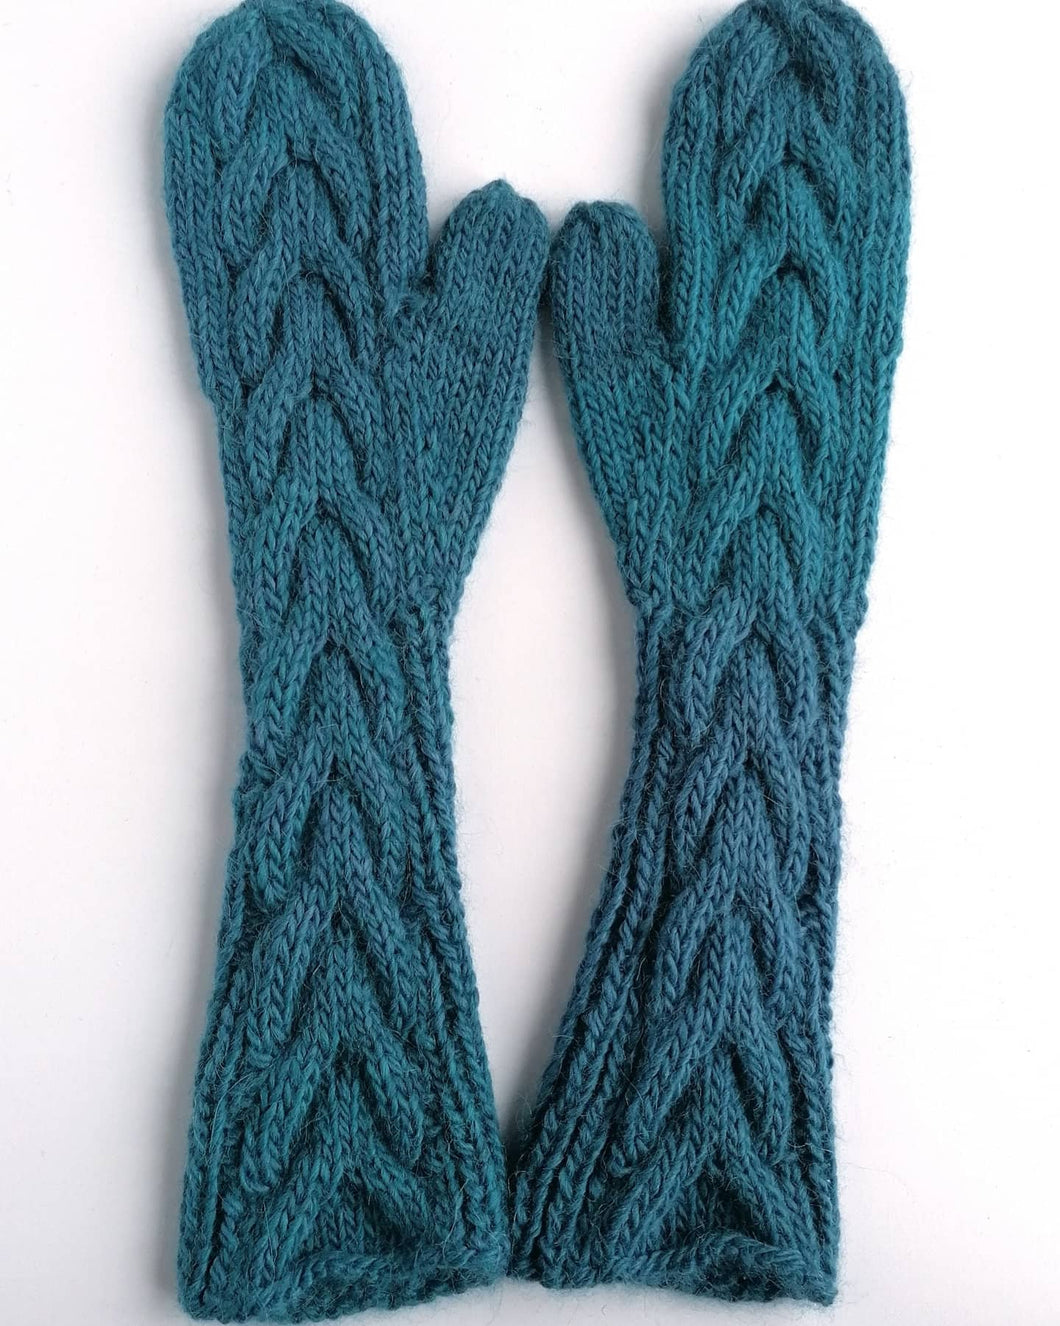 Hand knitted cabled mittens.